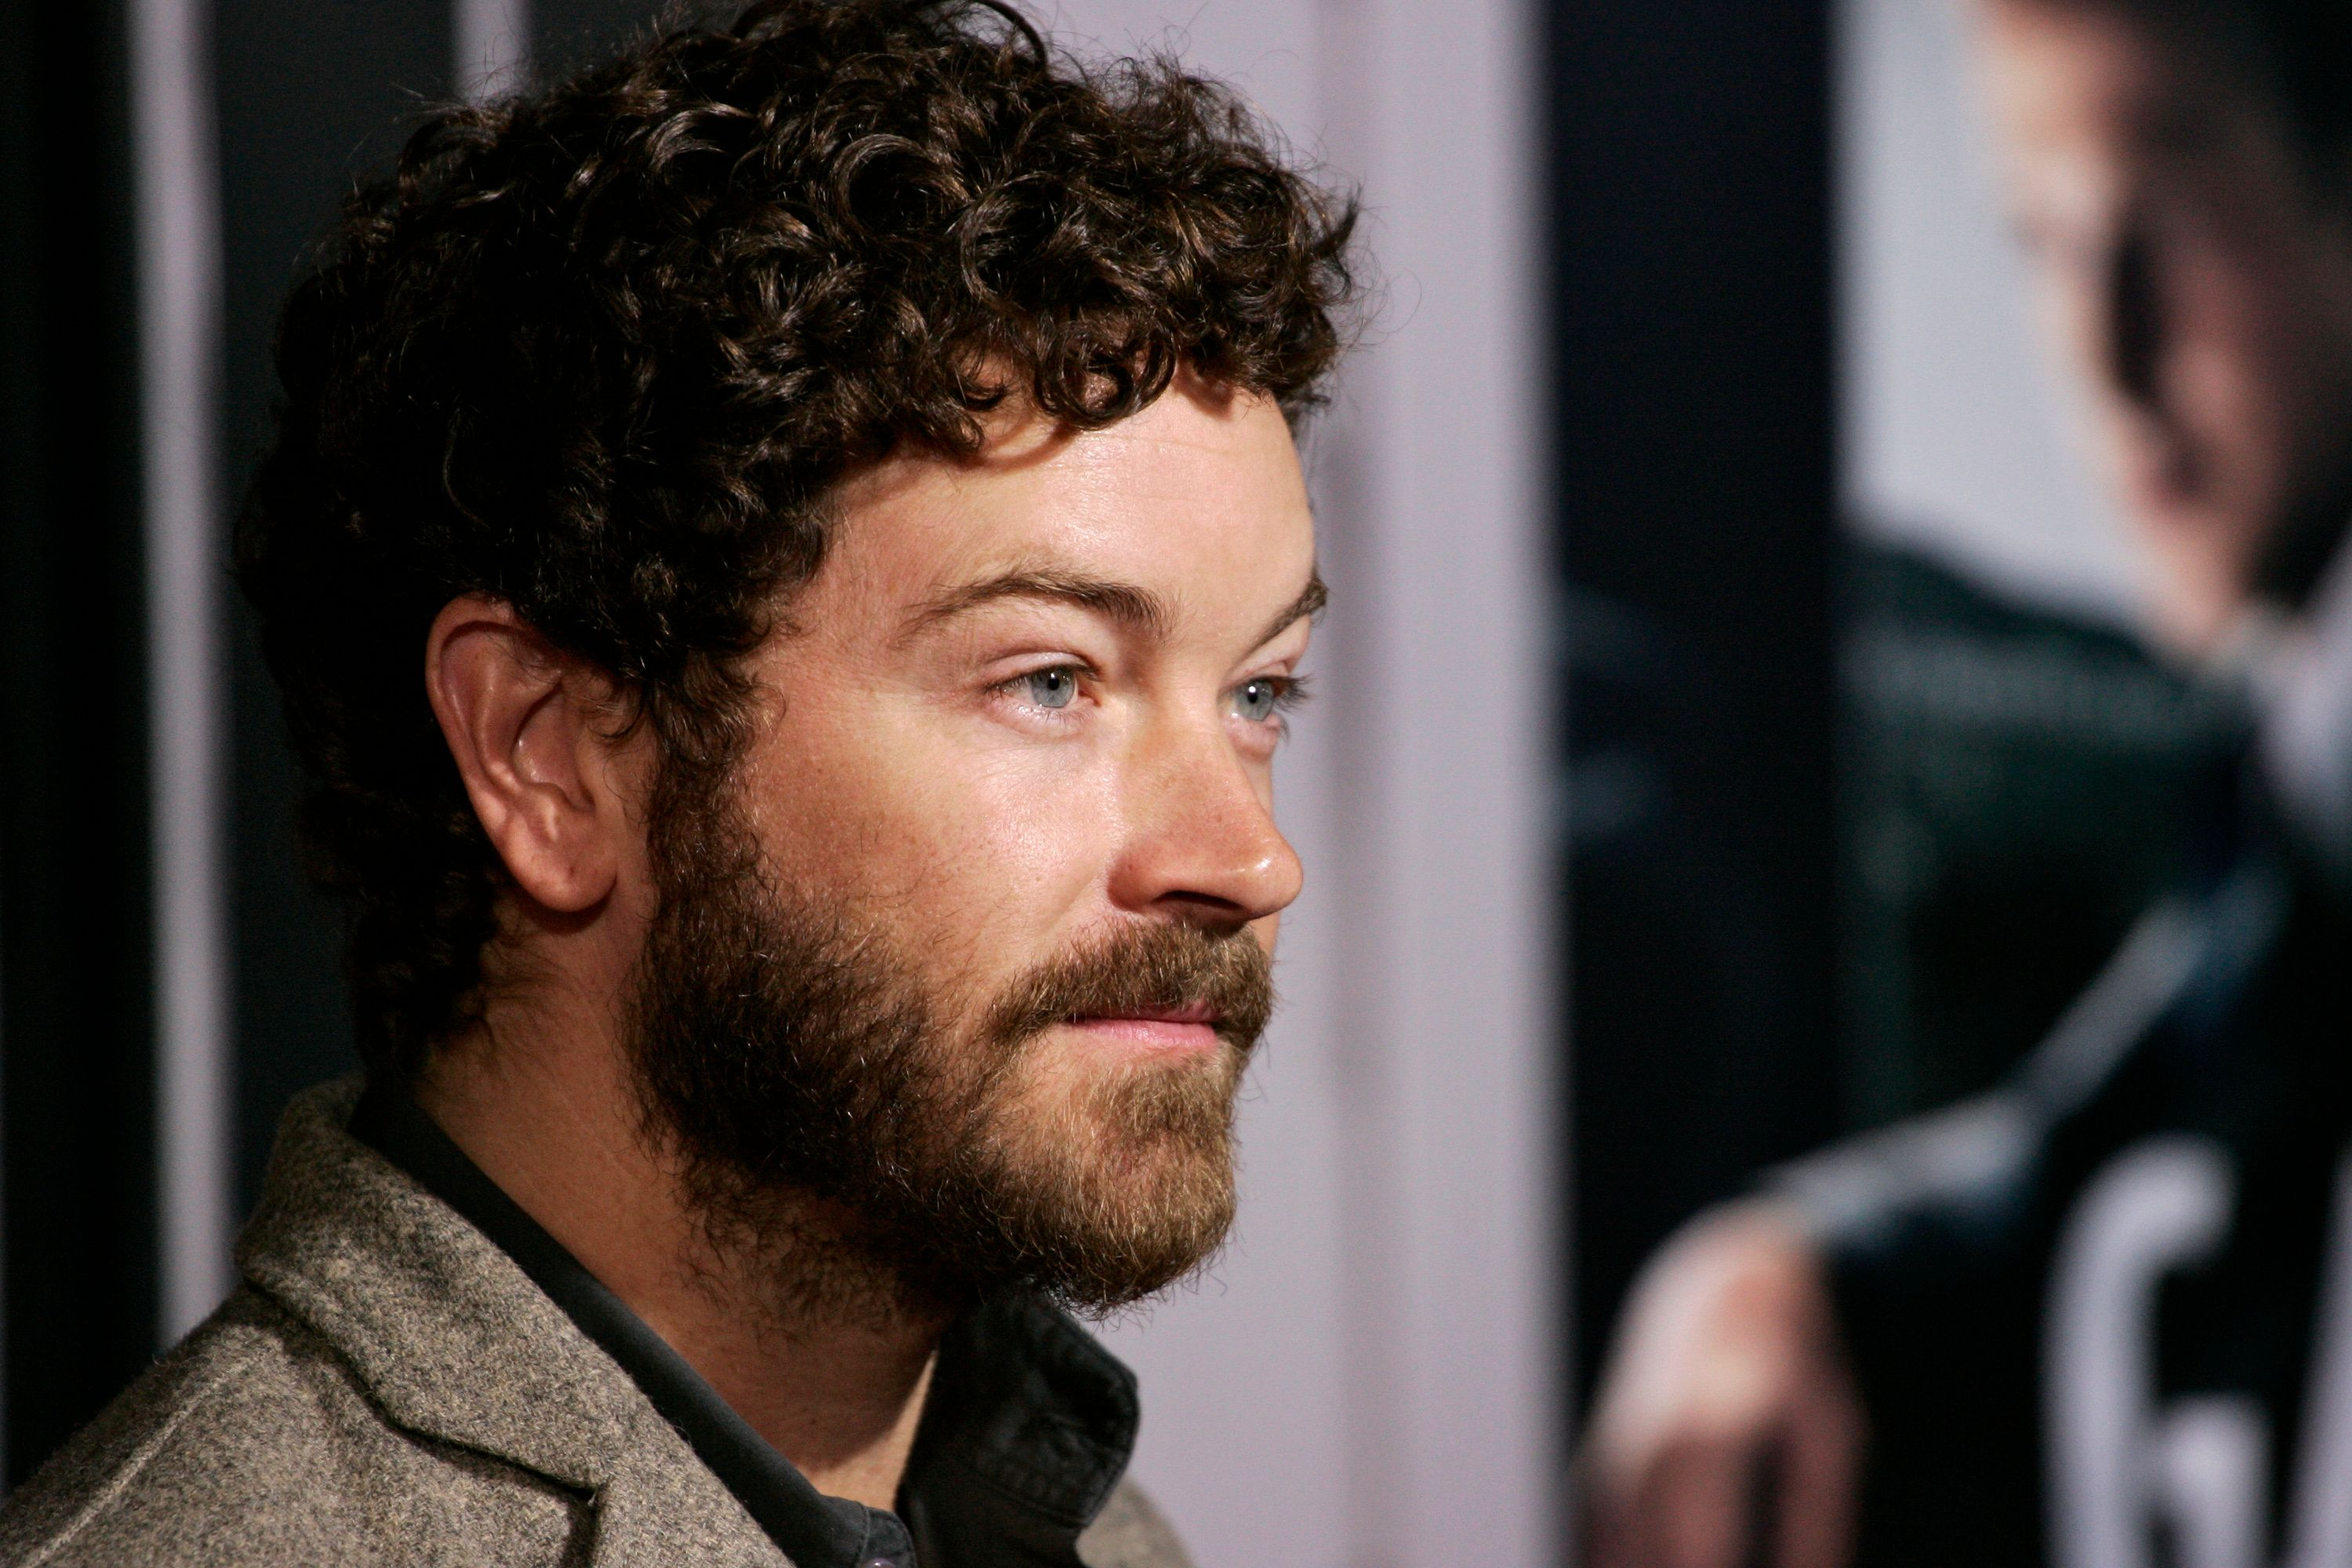 Netflix fire actor Danny Masterson amid multiple rape allegations